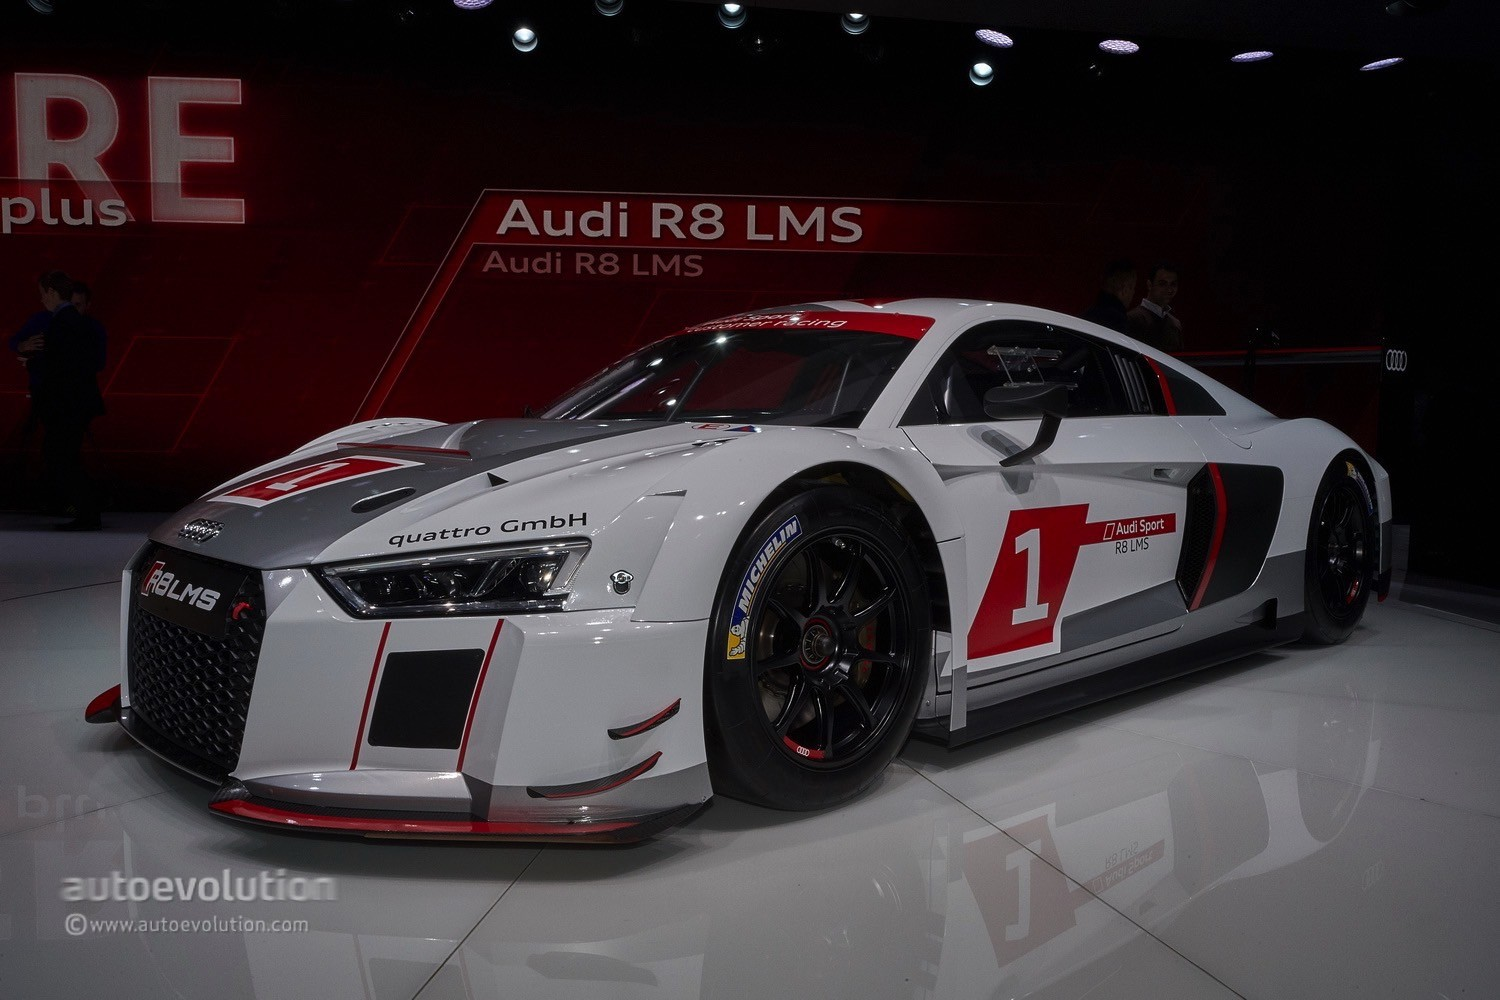 Audi Rs3 Lms >> 2016 Audi R8 LMS Races into GT3 with Stiffer Chassis and ...